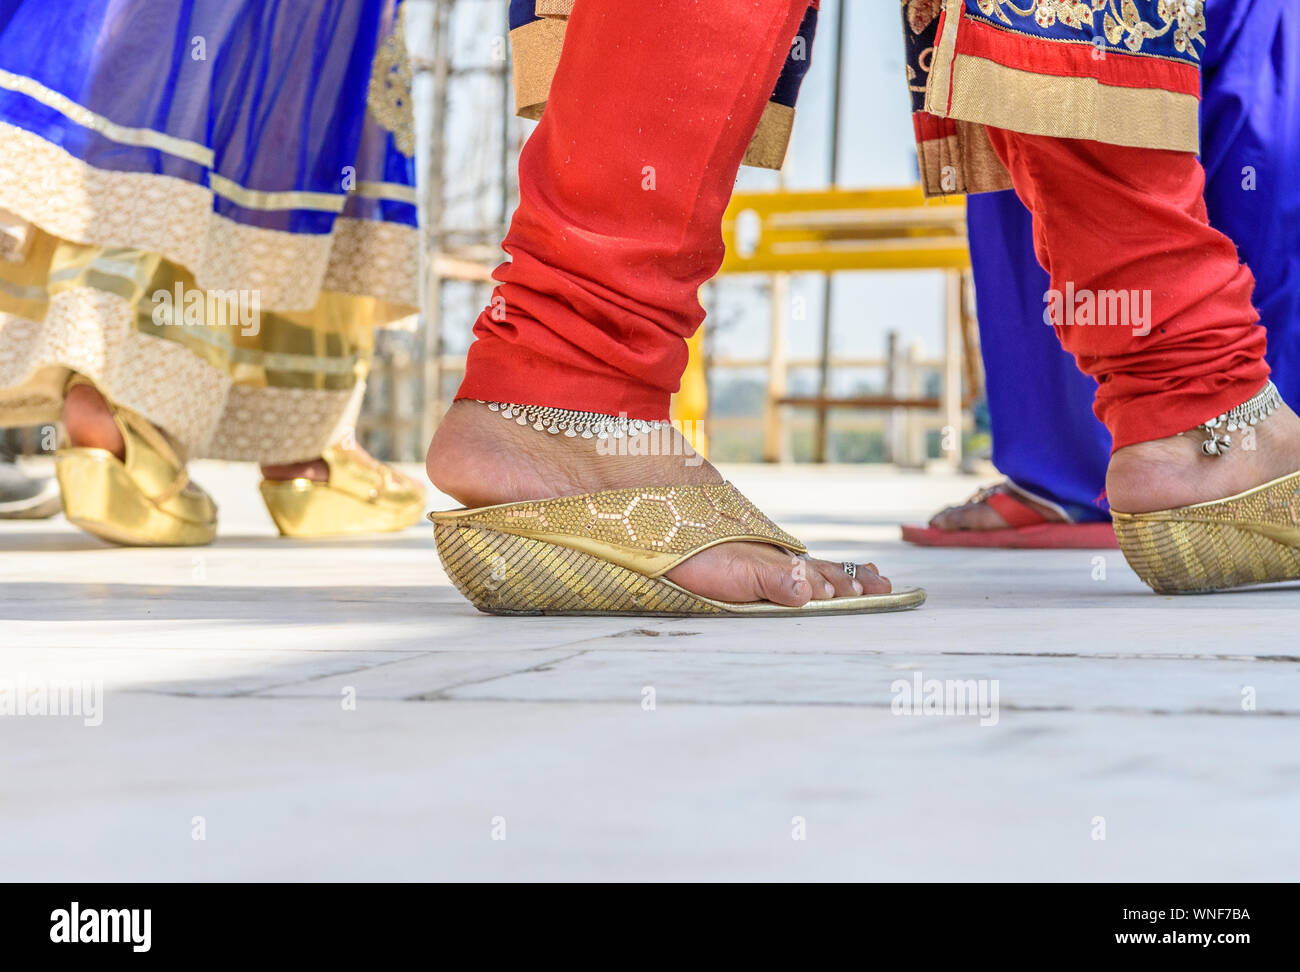 955 Anklet Photos - Free & Royalty-Free Stock Photos from Dreamstime